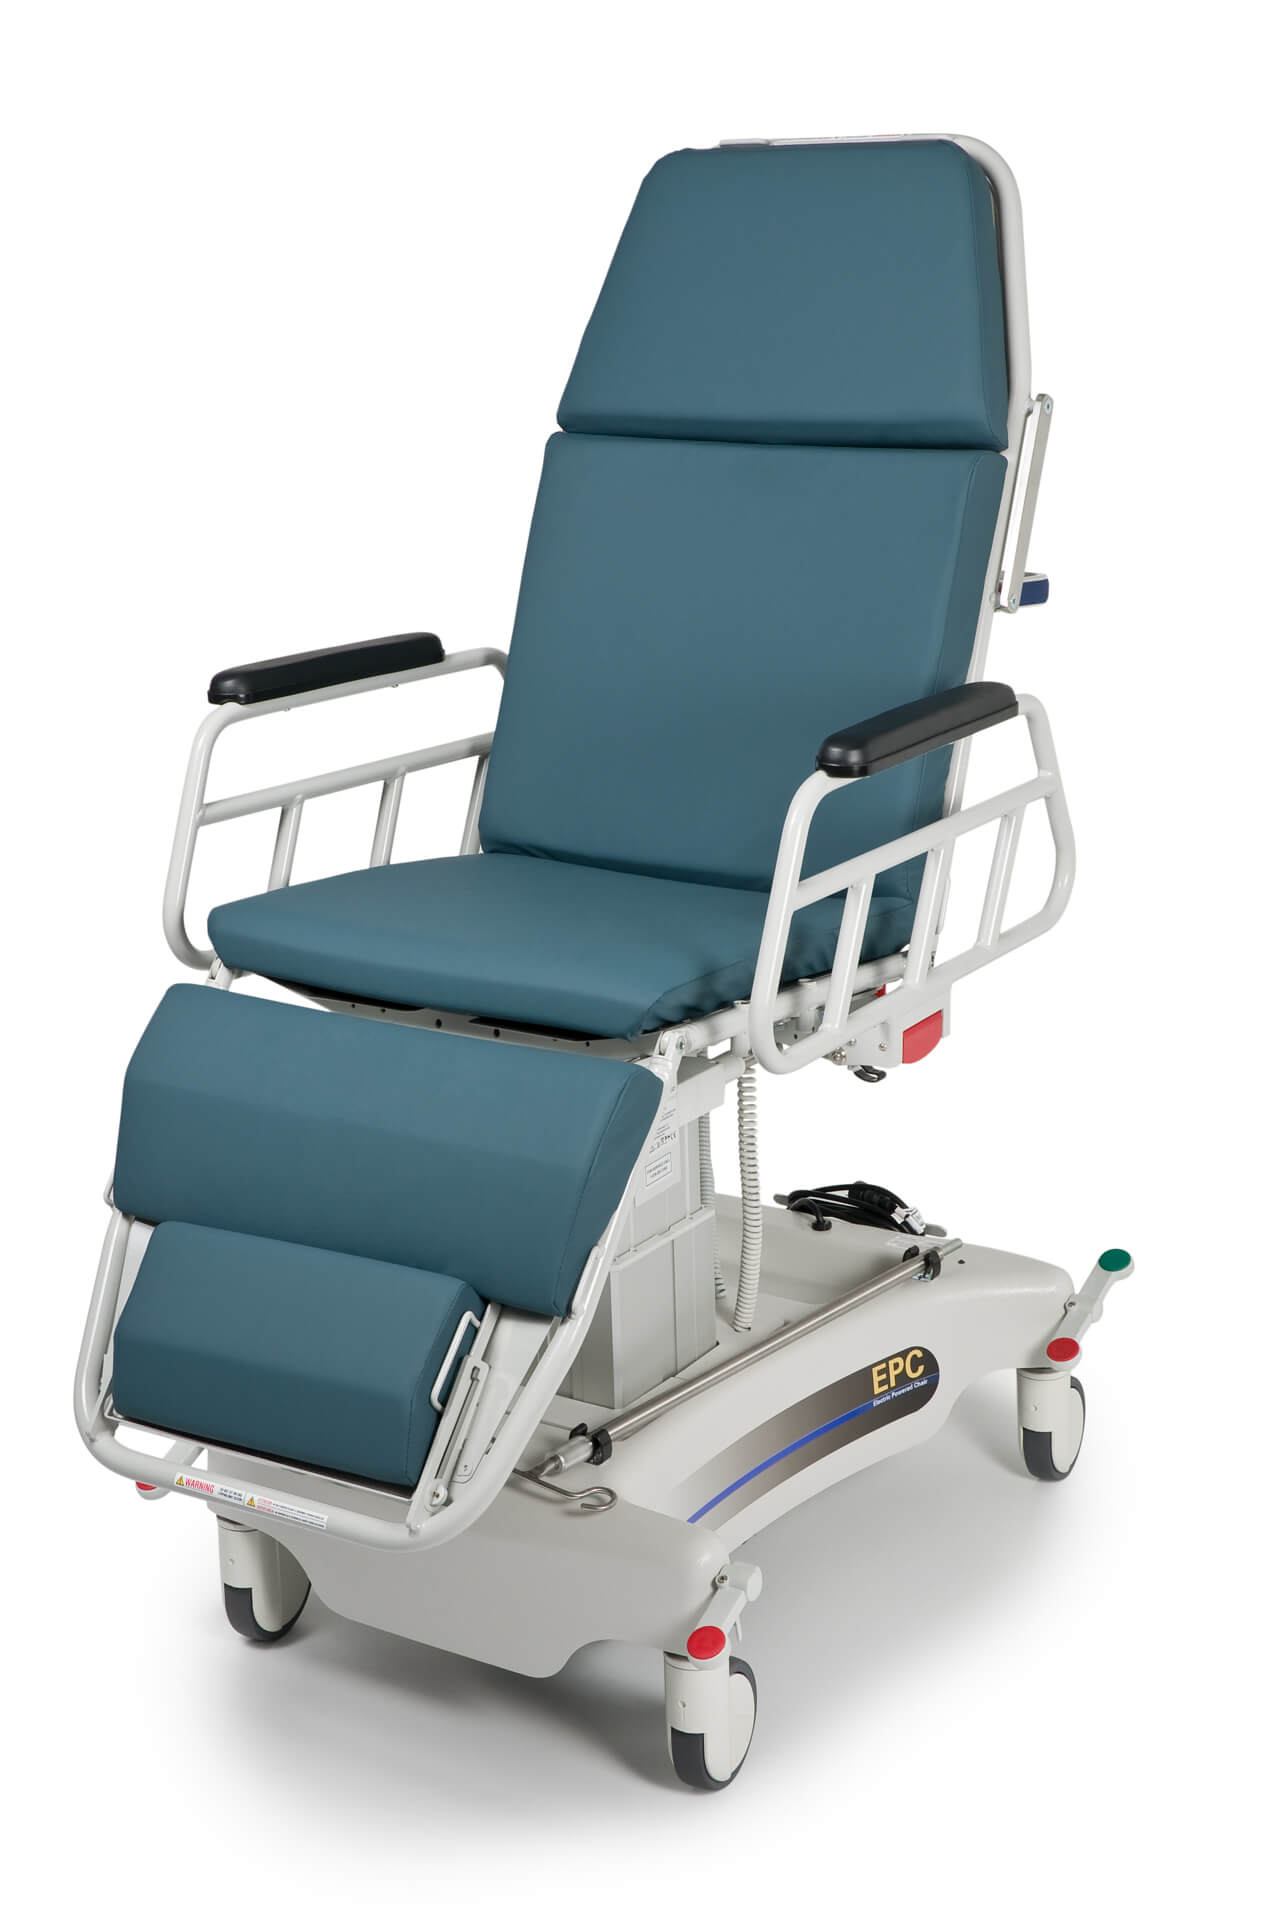 Powered All Purpose Chair (EPC) Series